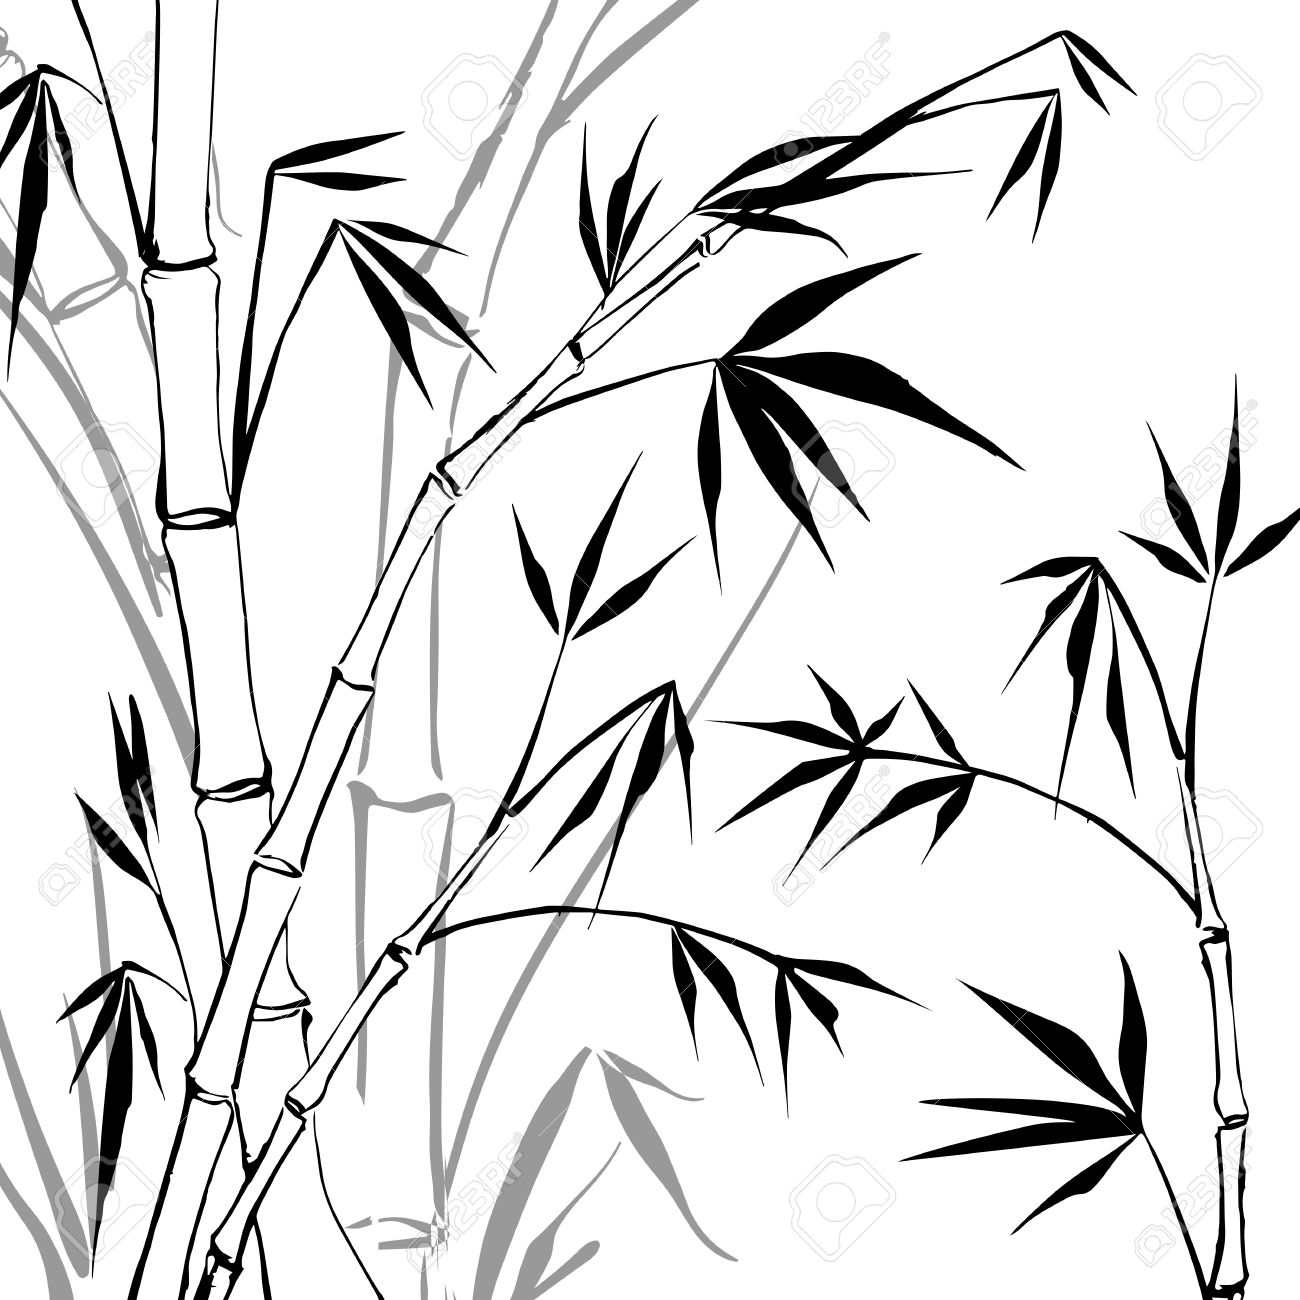 bamboo forest drawing bamboo forest drawing at getdrawings free download bamboo forest drawing